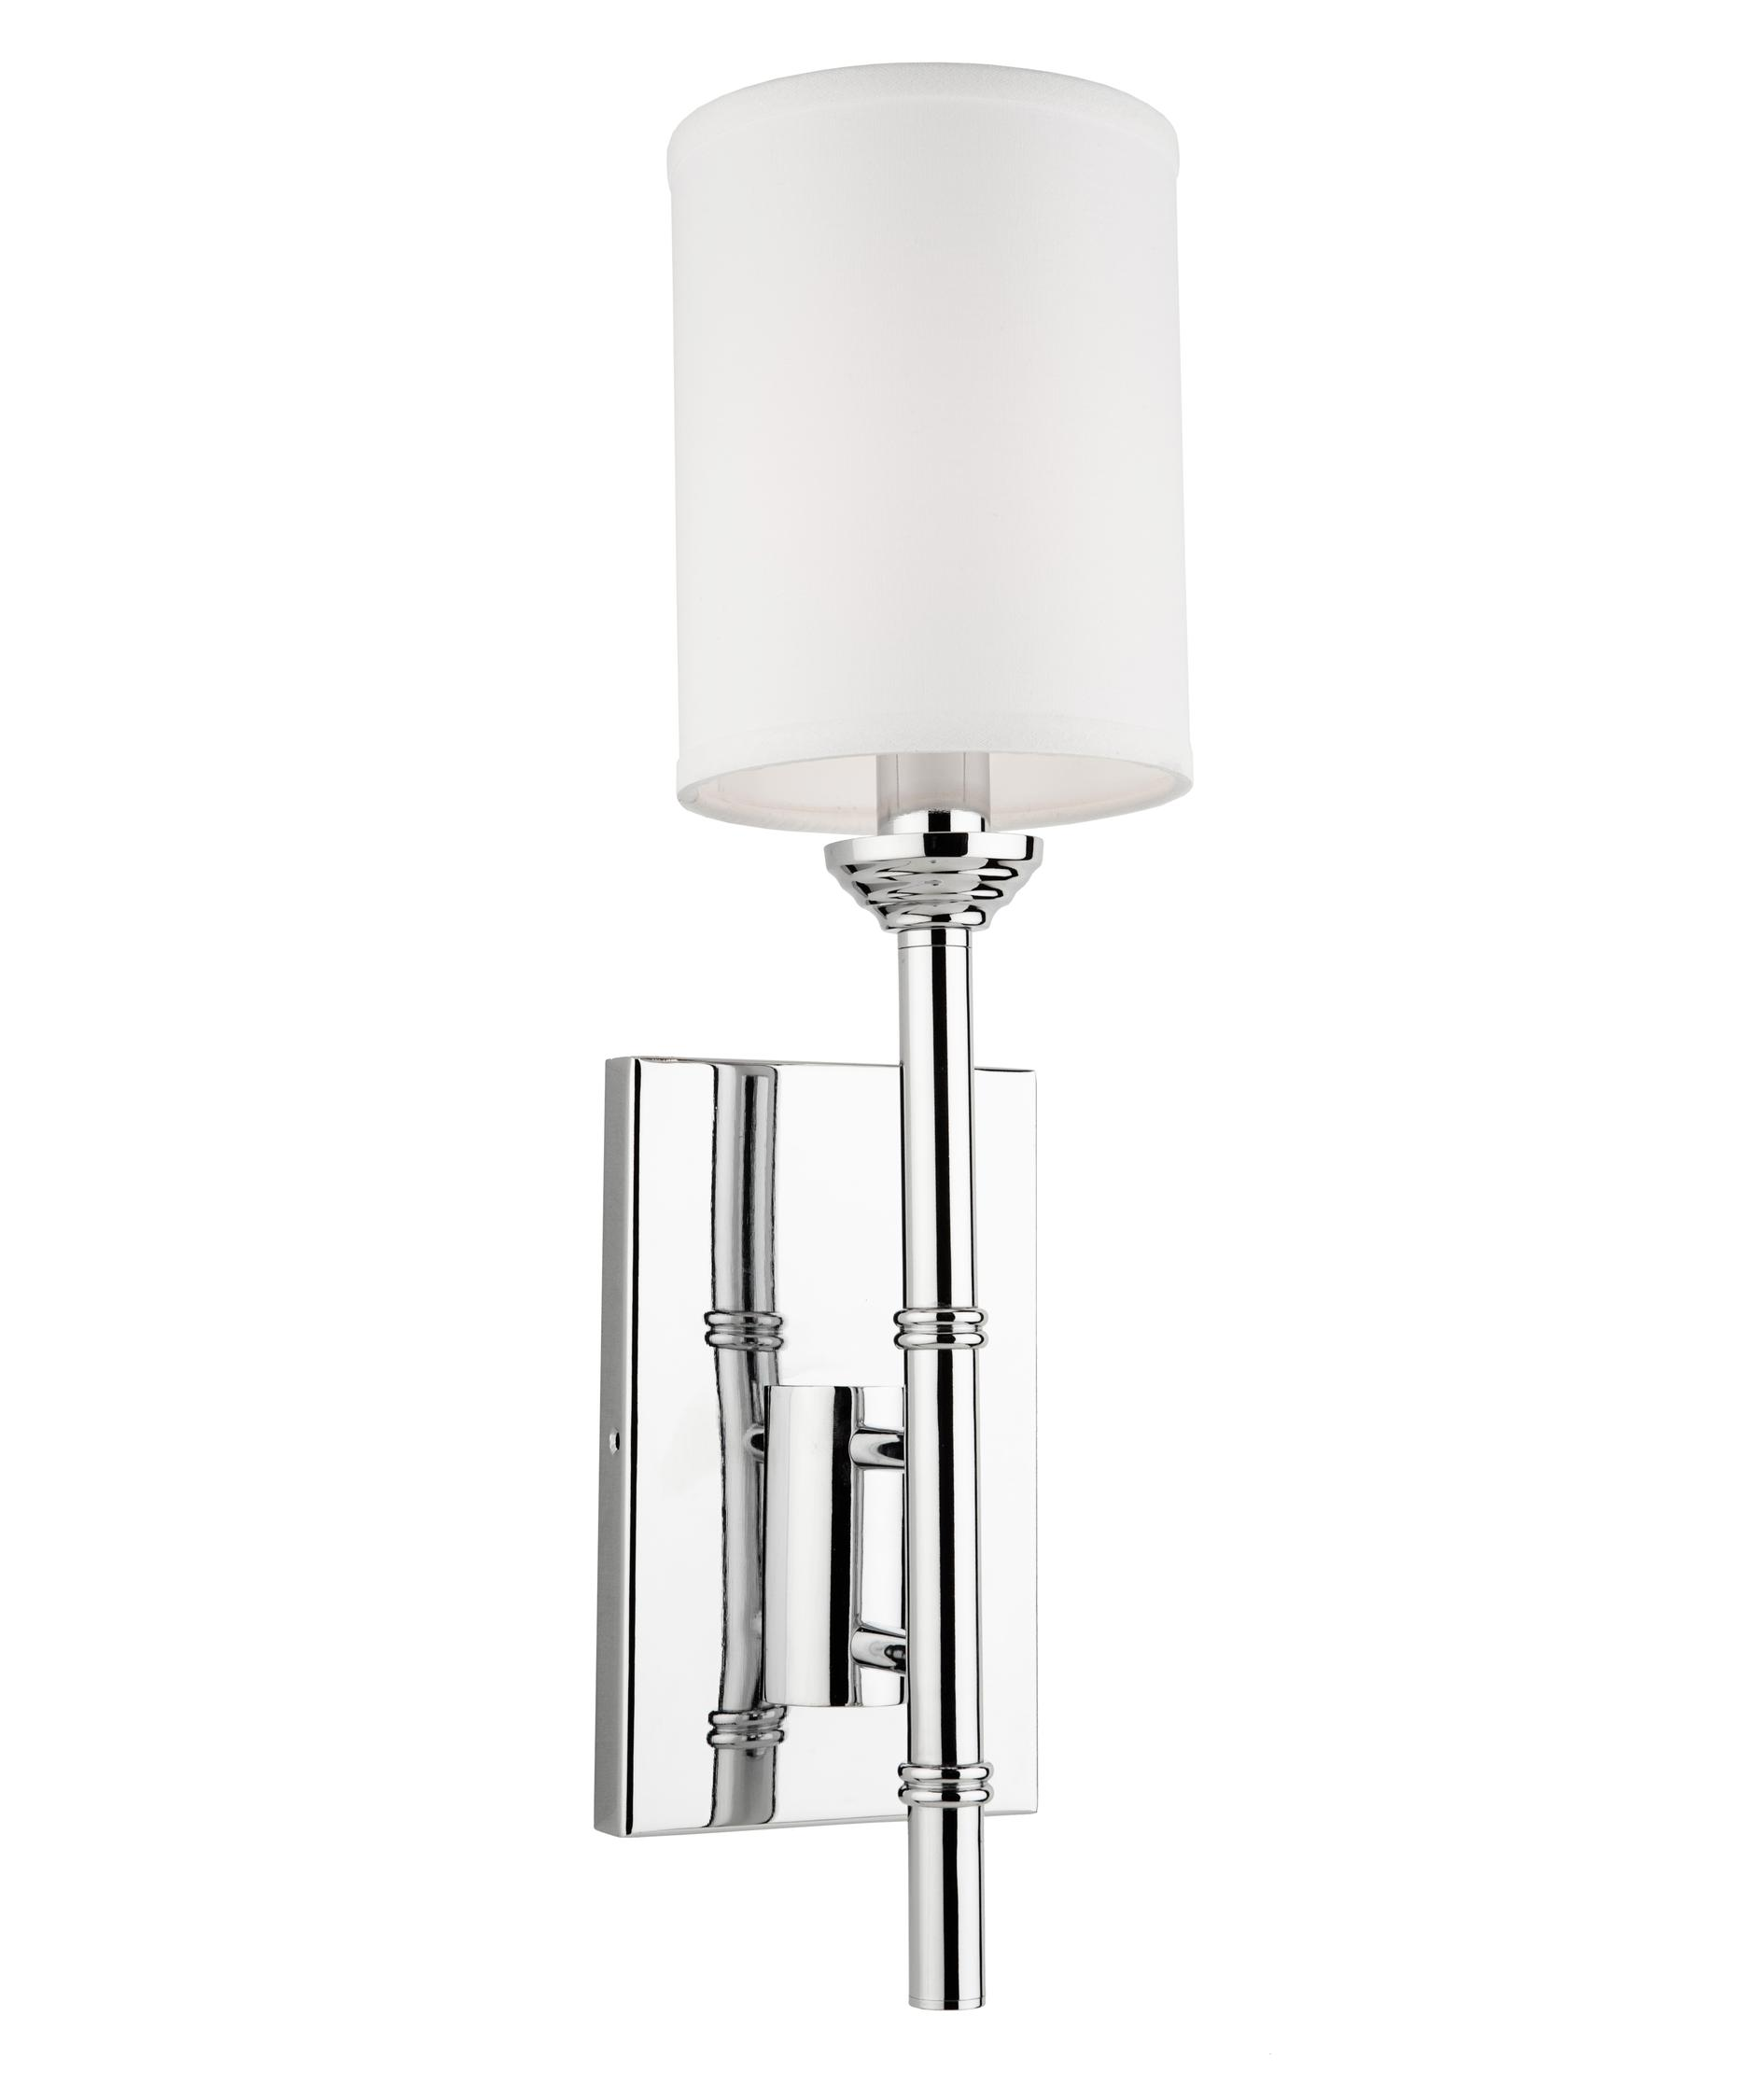 Steven and chris sc421 gramercy park 5 inch wall sconce capitol lighting 1 - Wall sconces for dining room ...